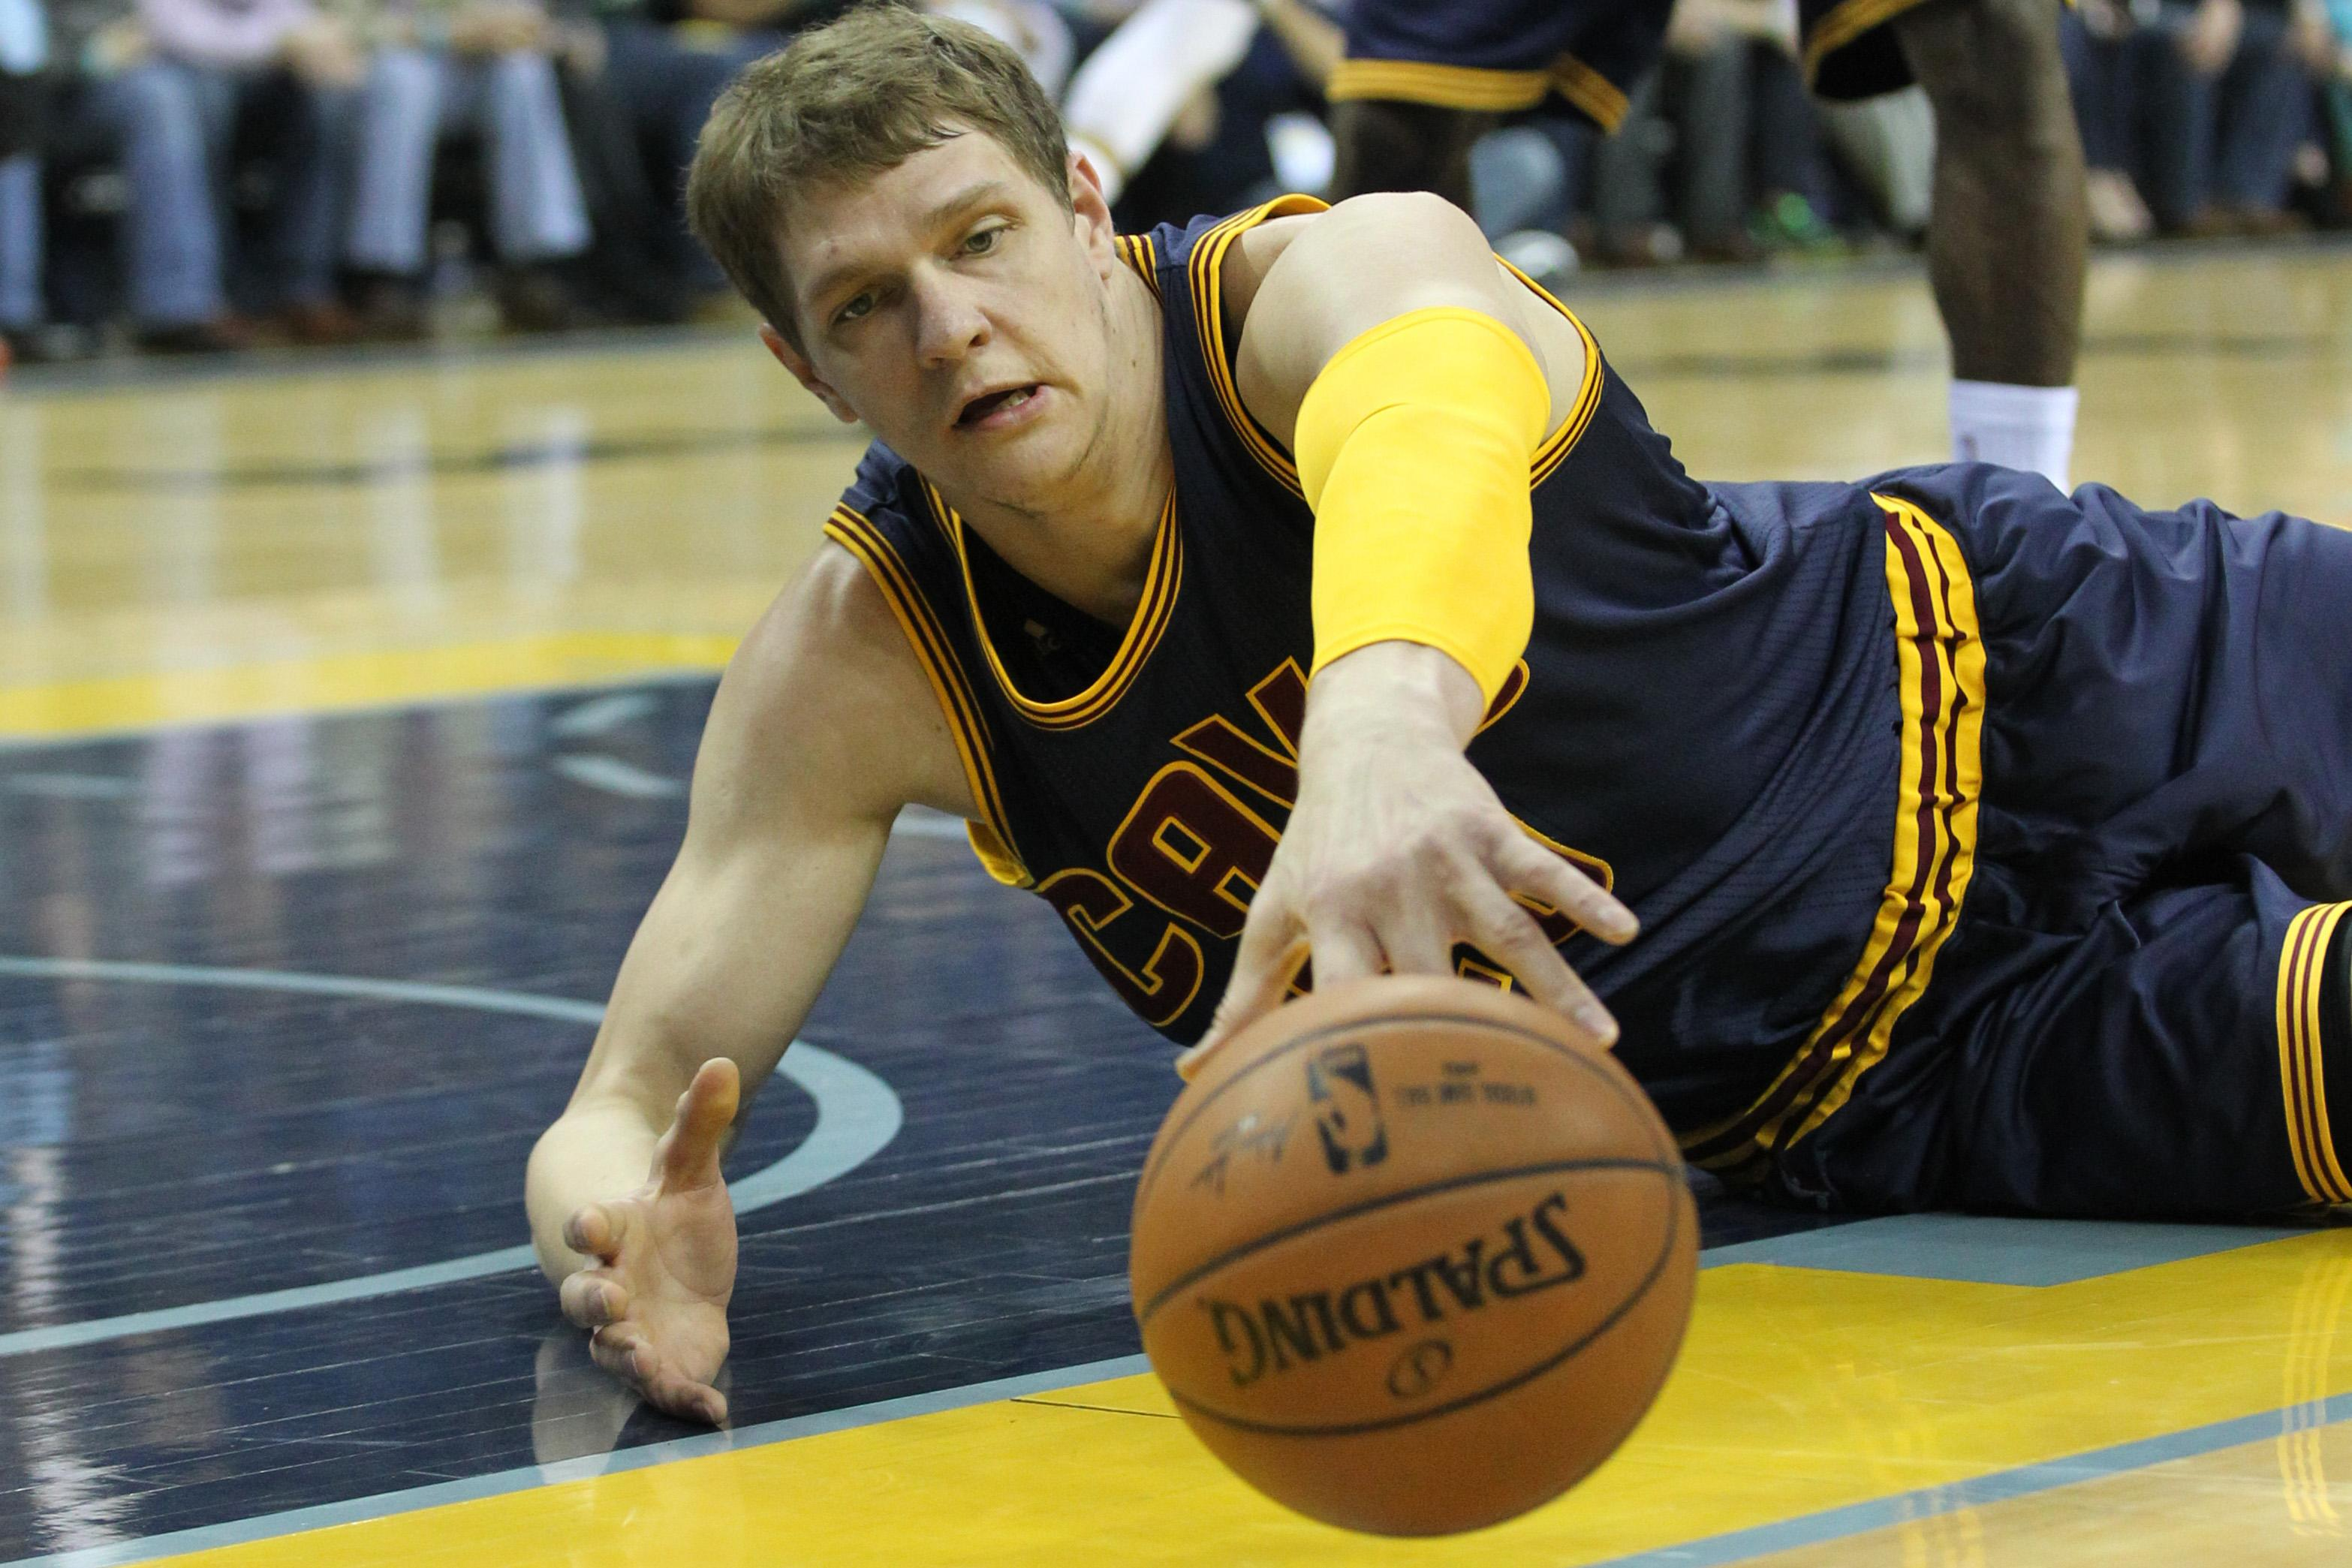 Timofey Mozgov, backward jersey and all, is a natural commercial pitchman